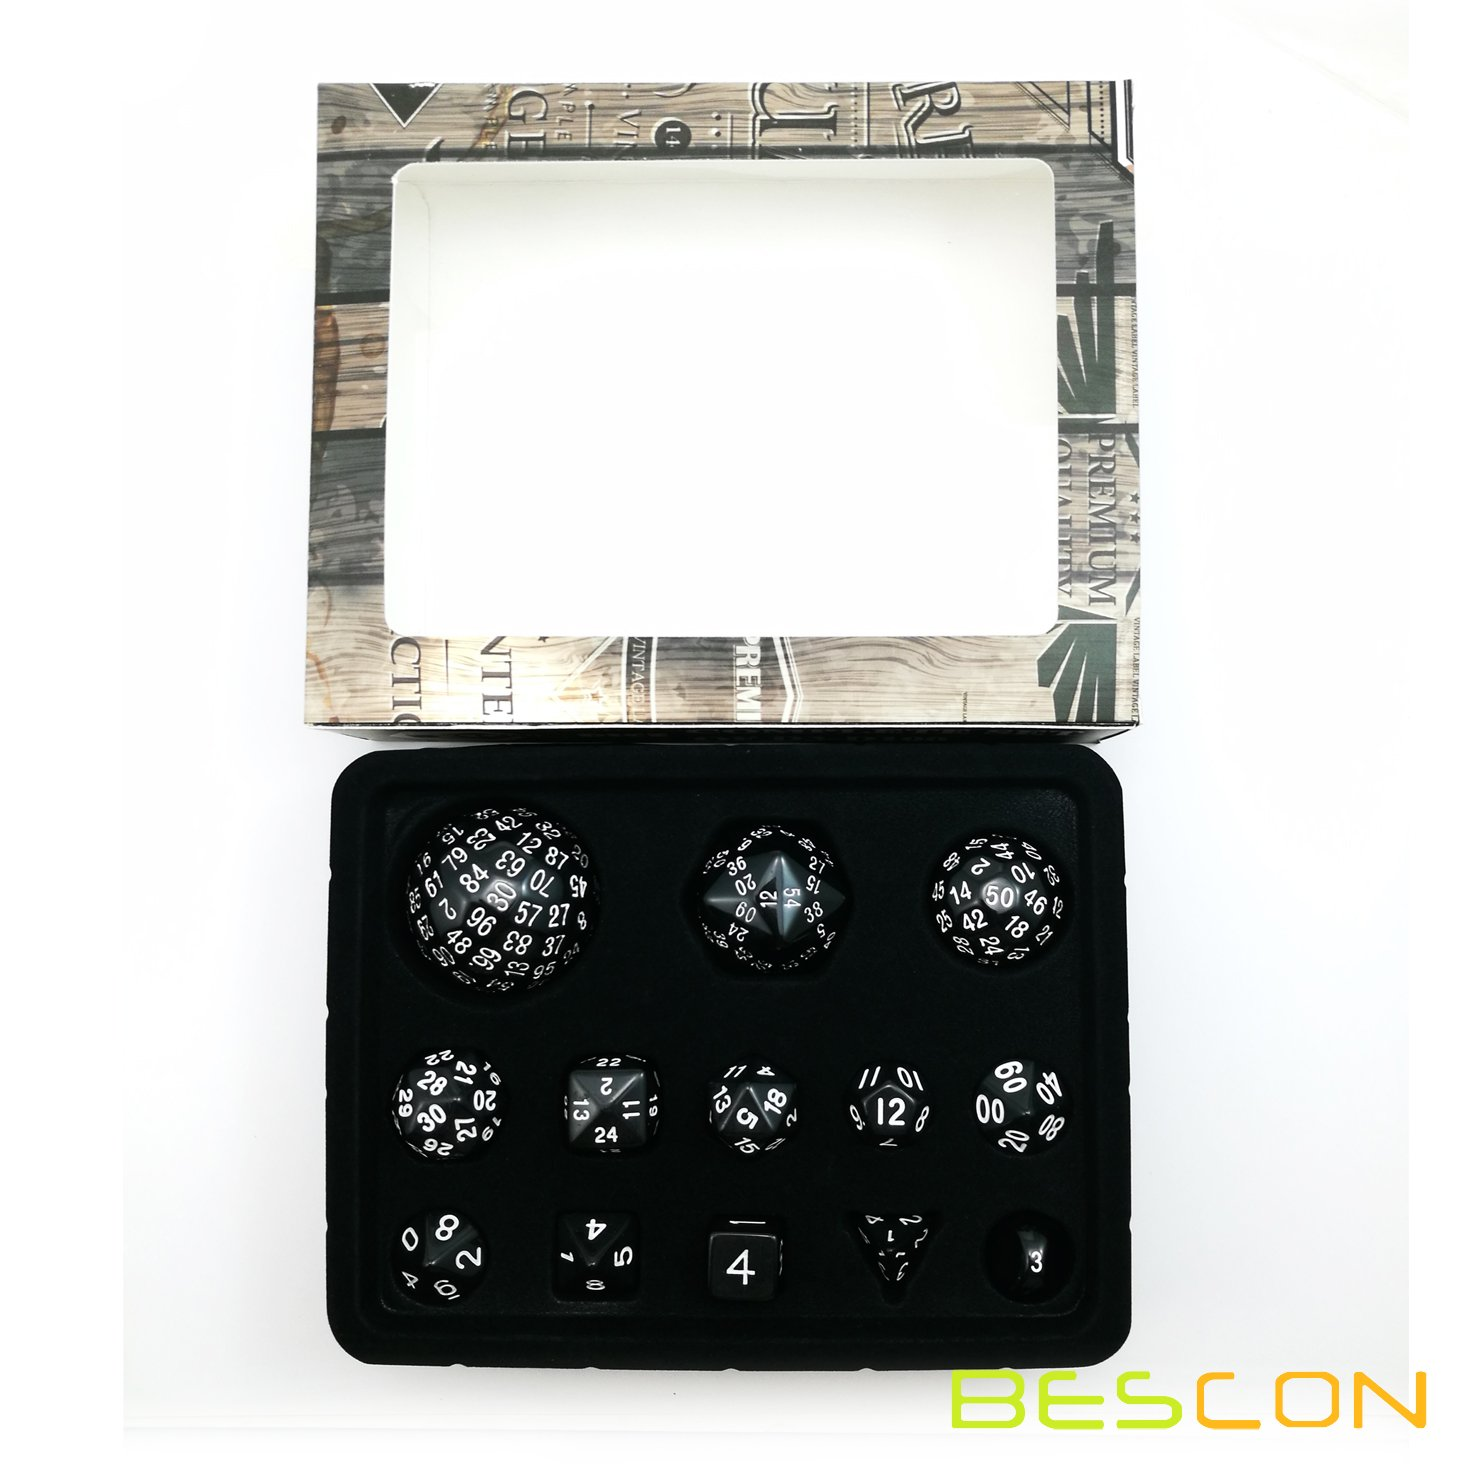 Bescon Complete Polyhedral Dice Set 13pcs D3-D100, 100 Sides Dice Set Opaque Black by BESCON DICE (Image #4)